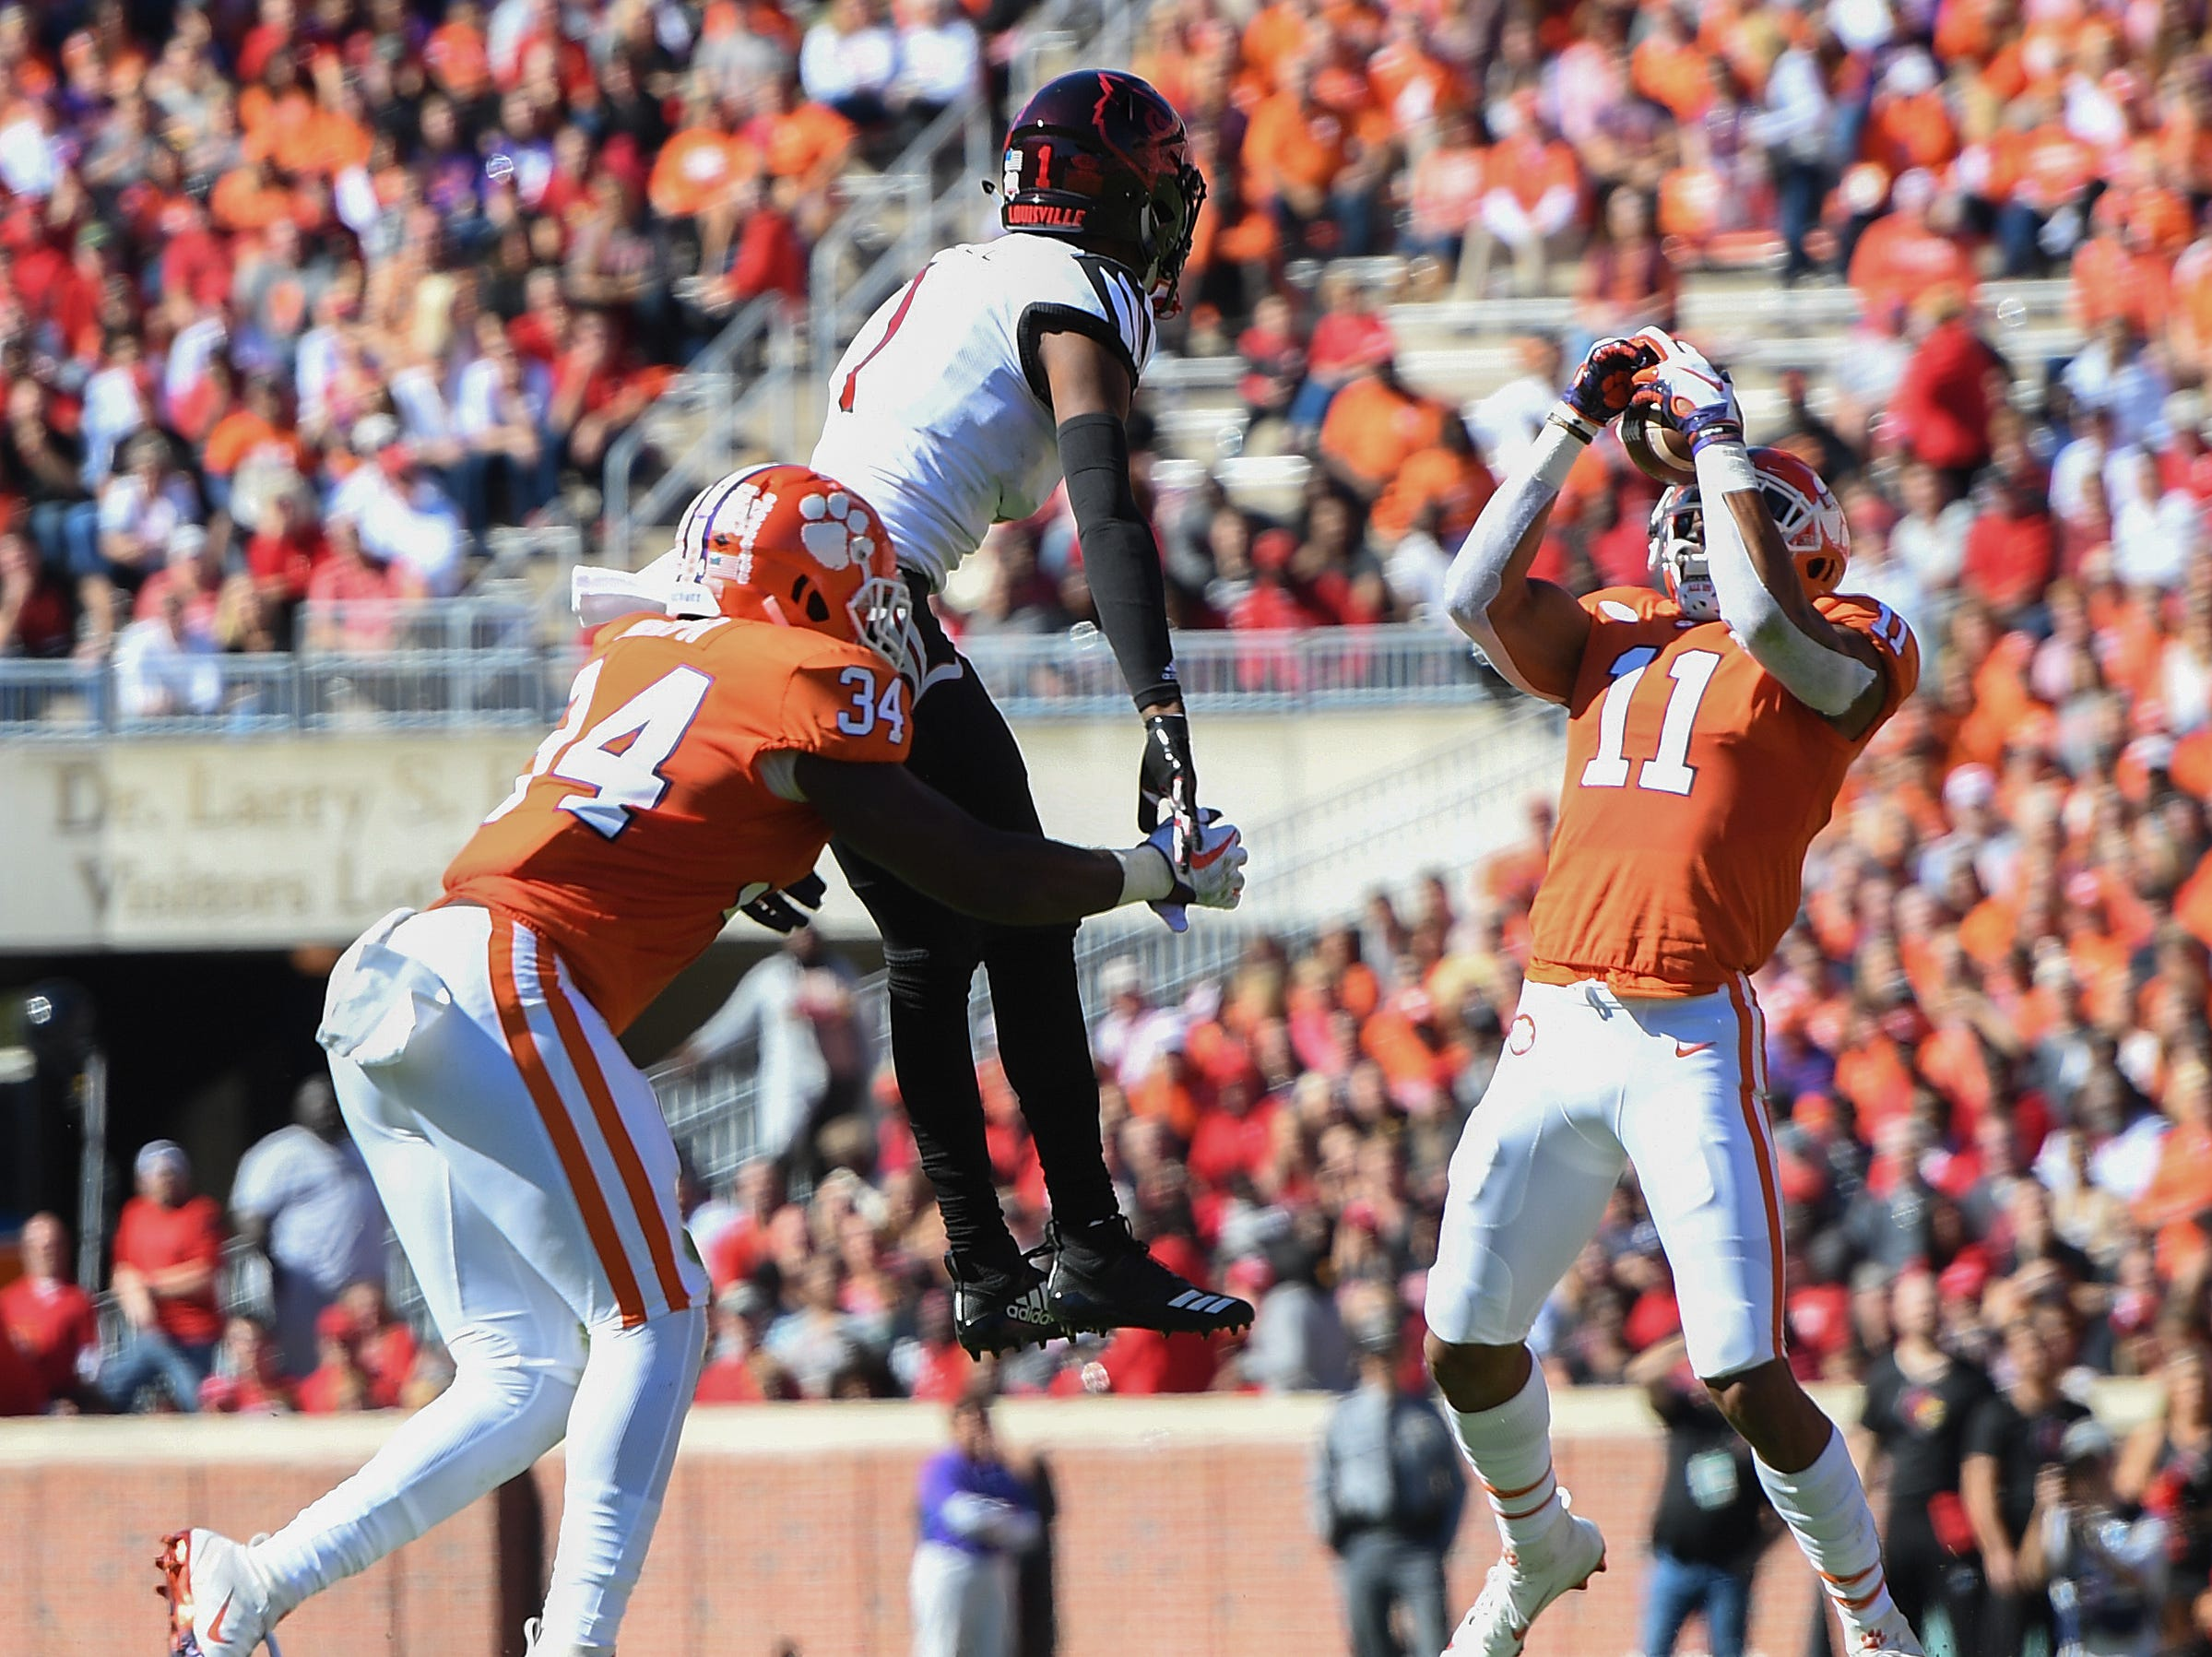 Clemson safety Isaiah Simmons (11) intercepts a pass intended for Louisville wide receiver Chatarius Atwell (1) during the 2nd quarter Saturday, November 3, 2018 at Clemson's Memorial Stadium.